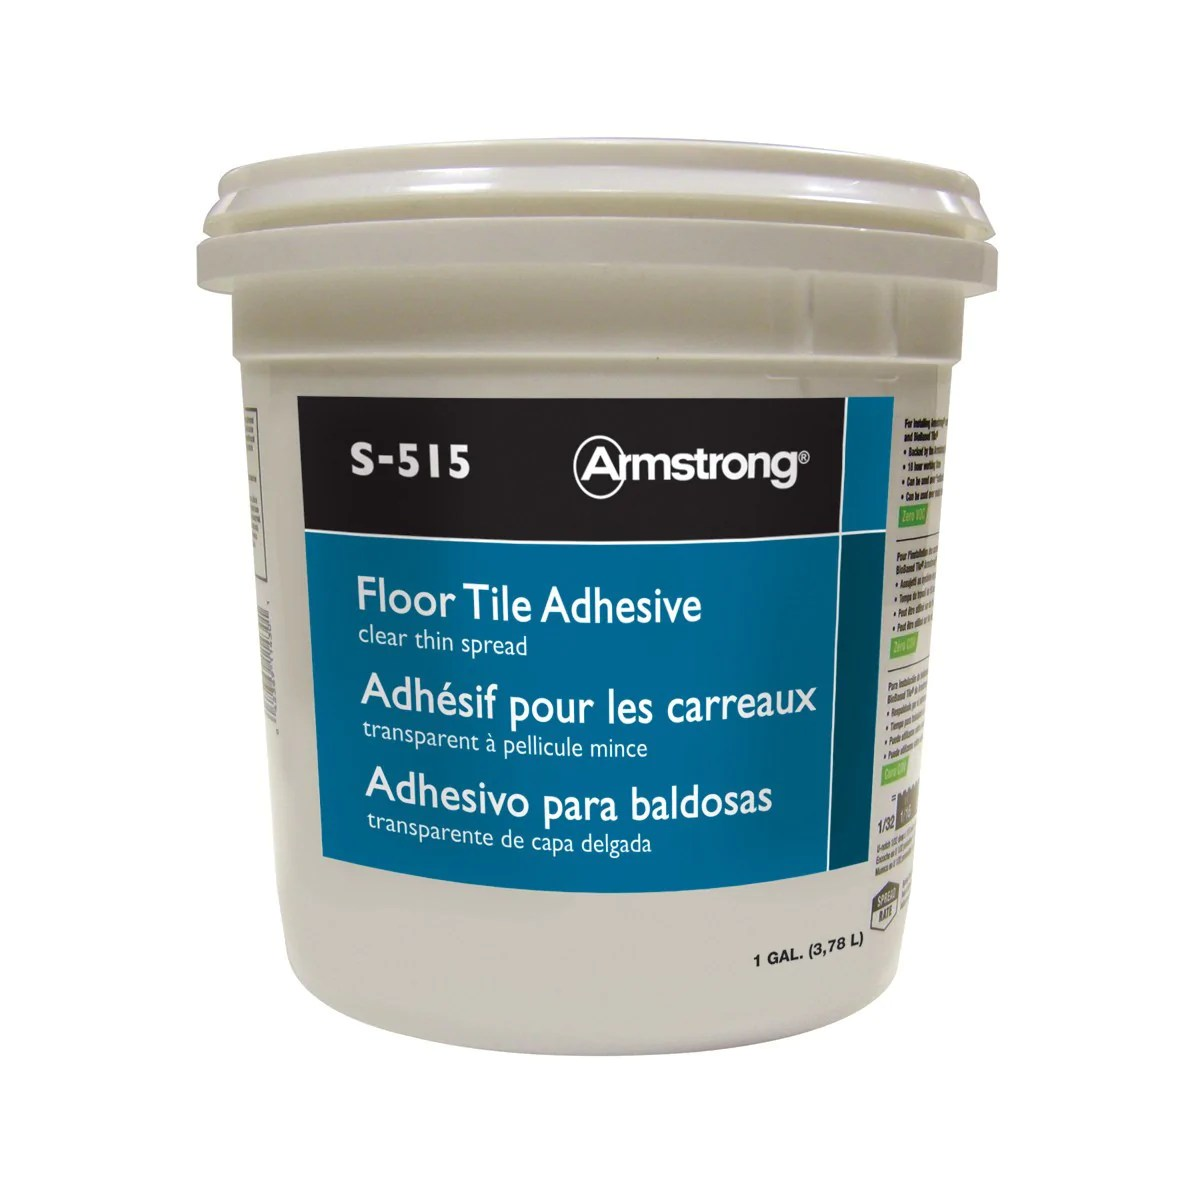 armstrong s 515 vct tile strong adhesive 1 gallon clear thin spread covers 300 sq ft per 1 gallon